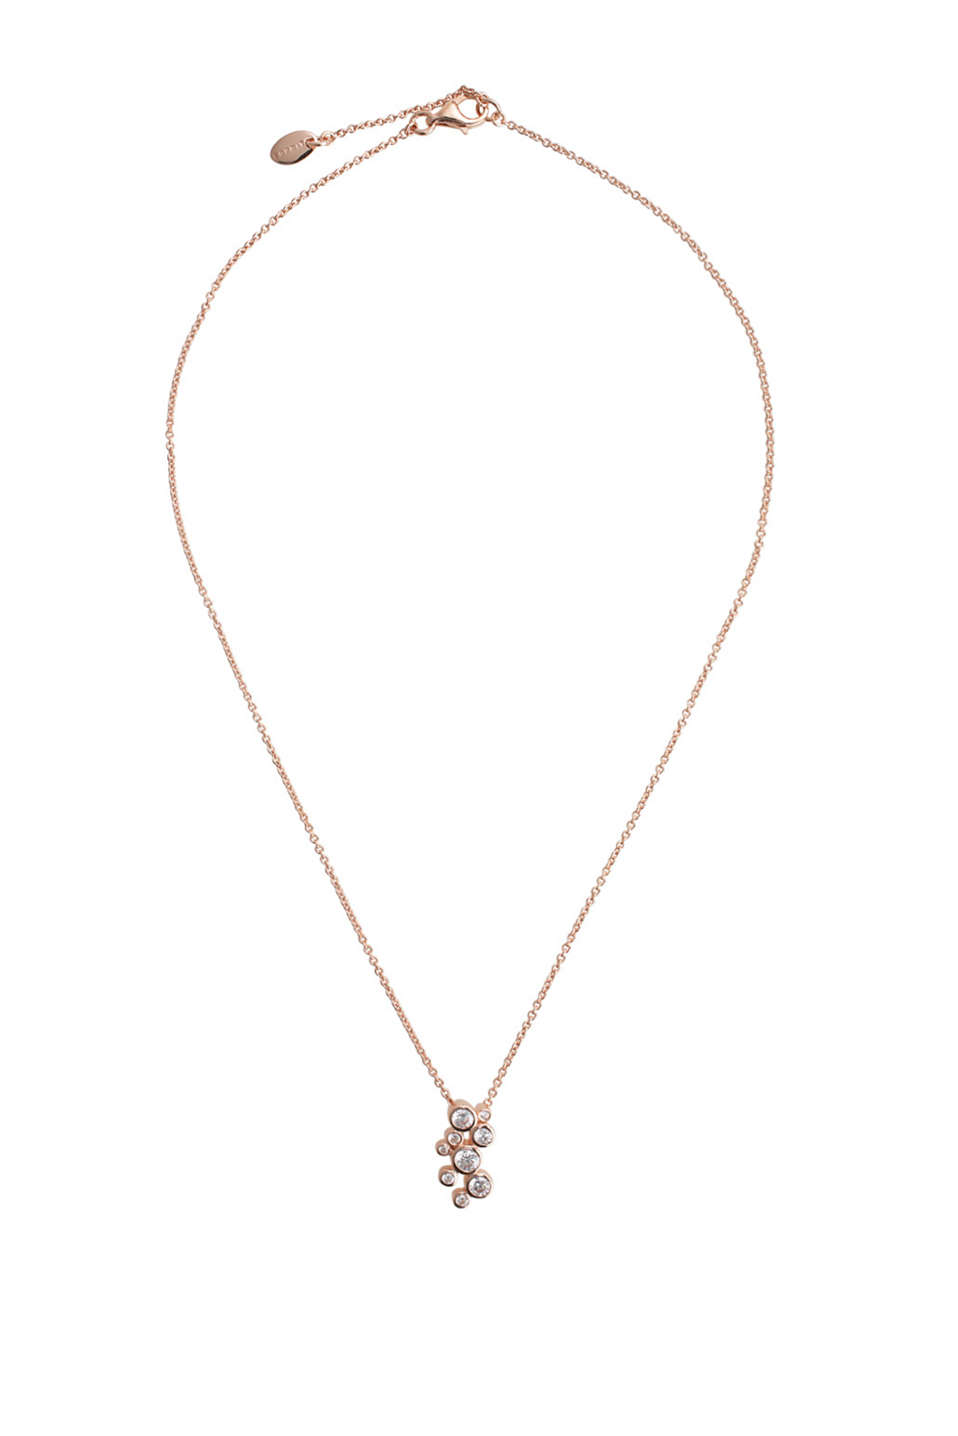 Esprit - sterling silver/rose gold/zirconia chain